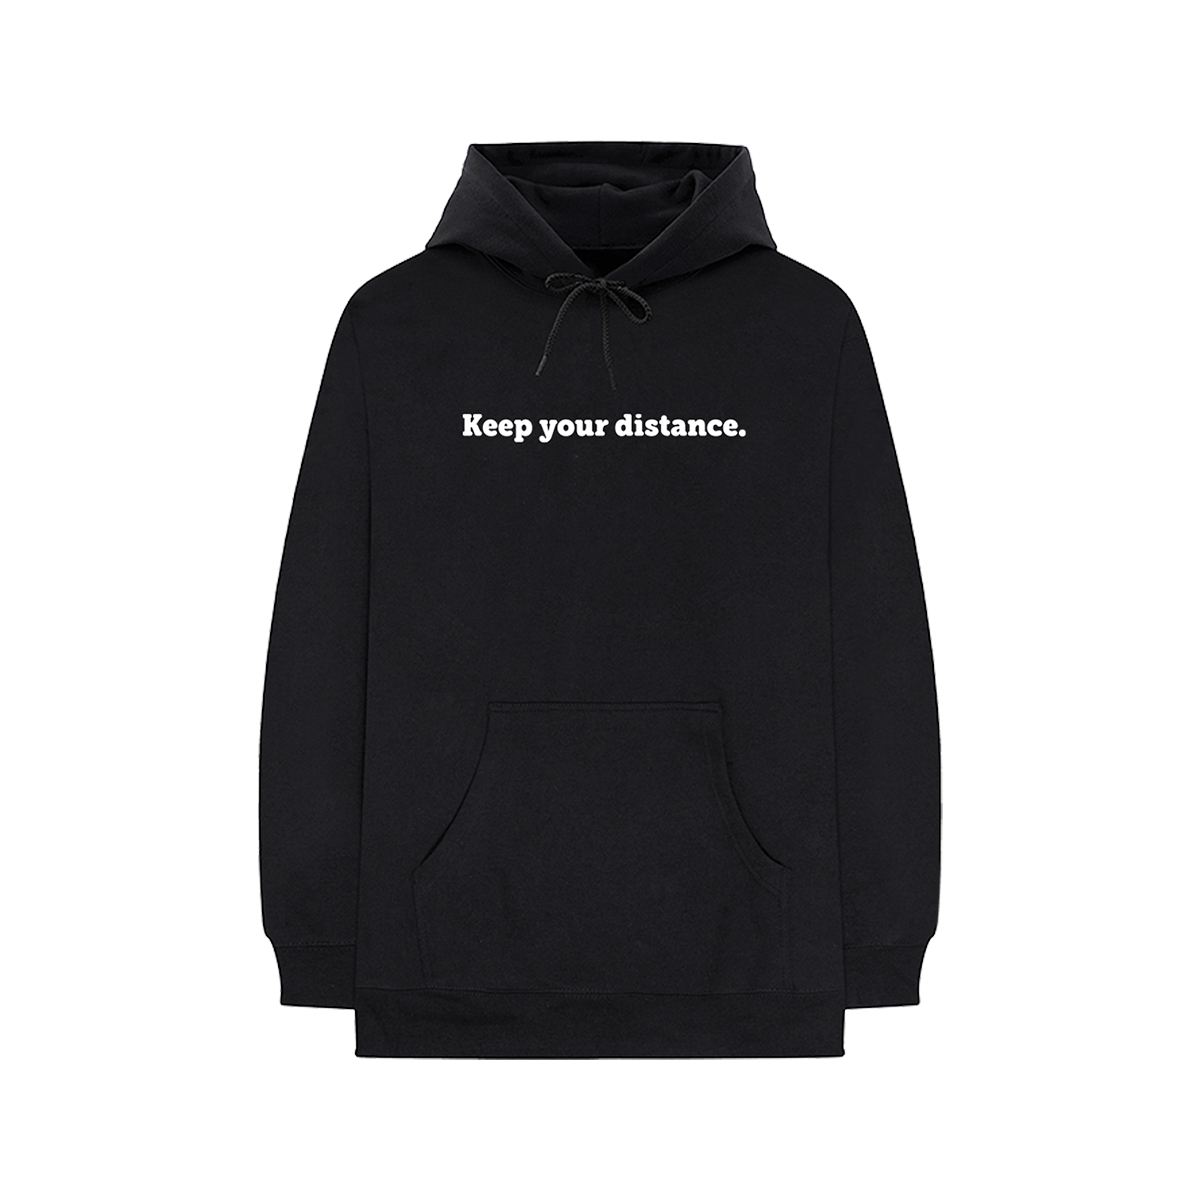 Social Distancing Embroidered Hoodie